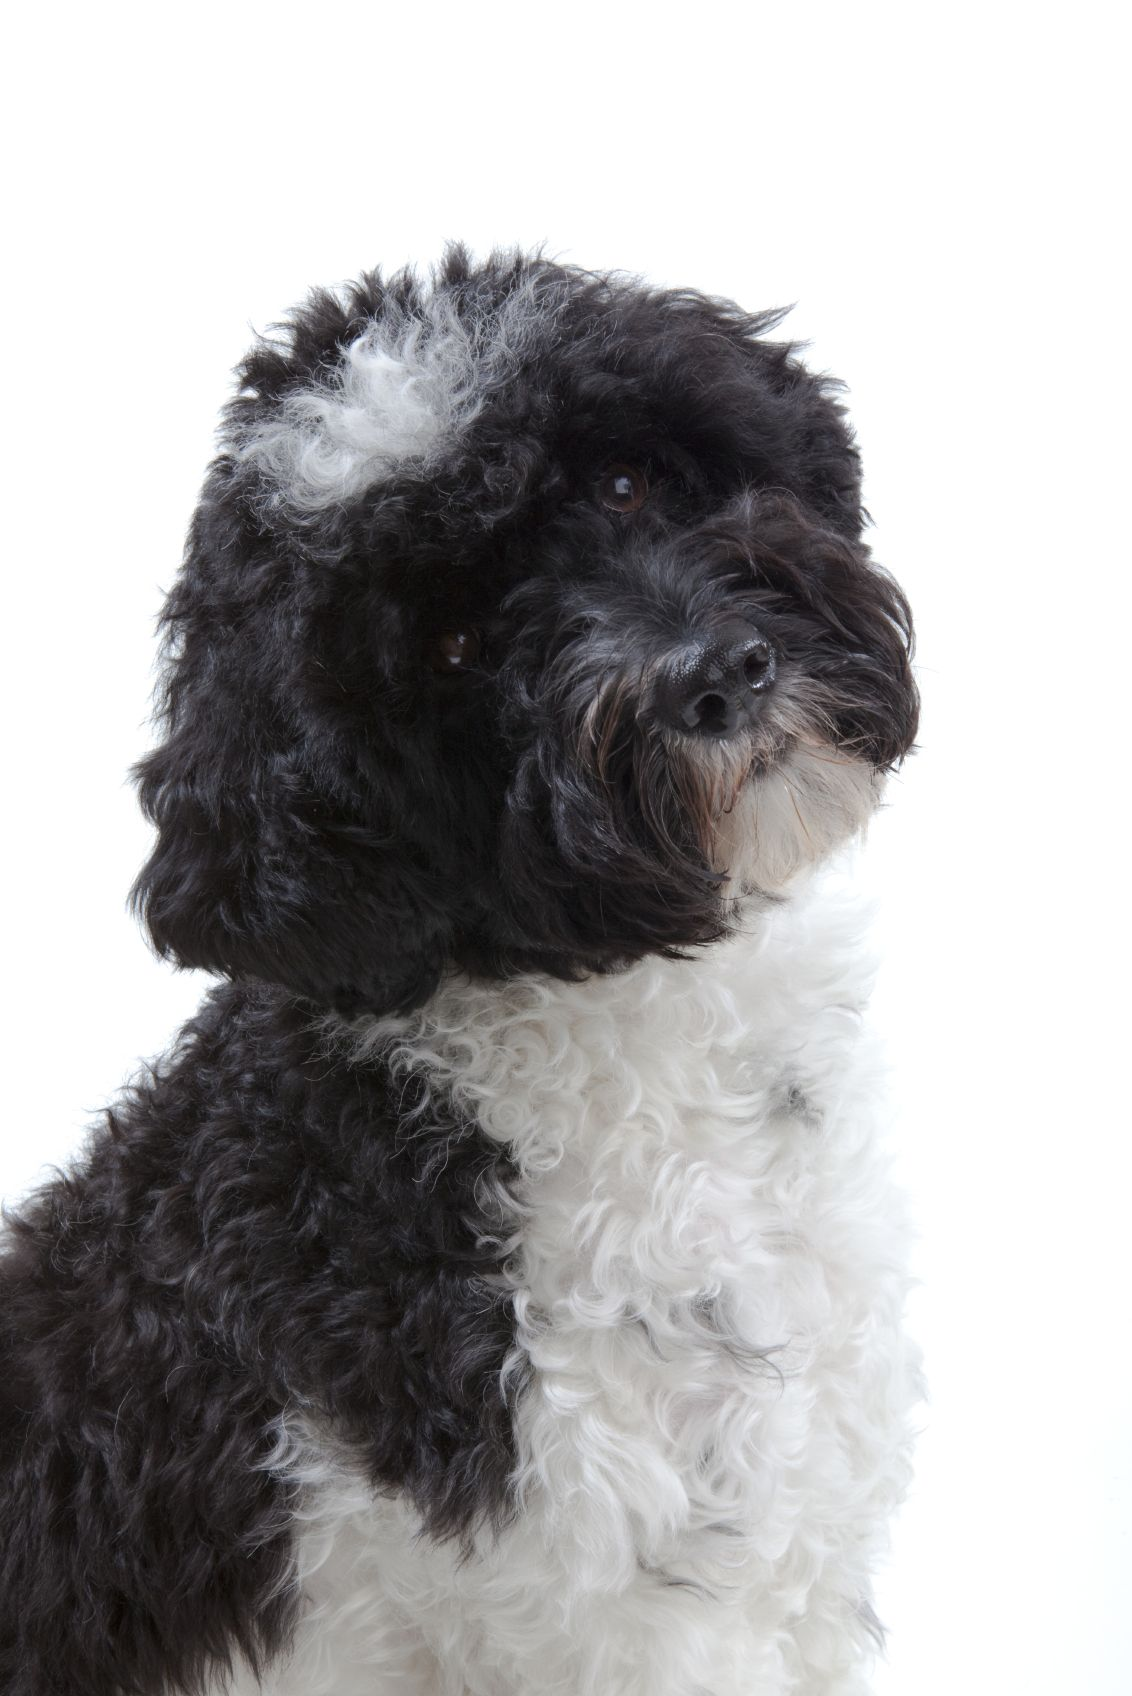 Dogs That Don't Shed The Portuguese Water Dog is